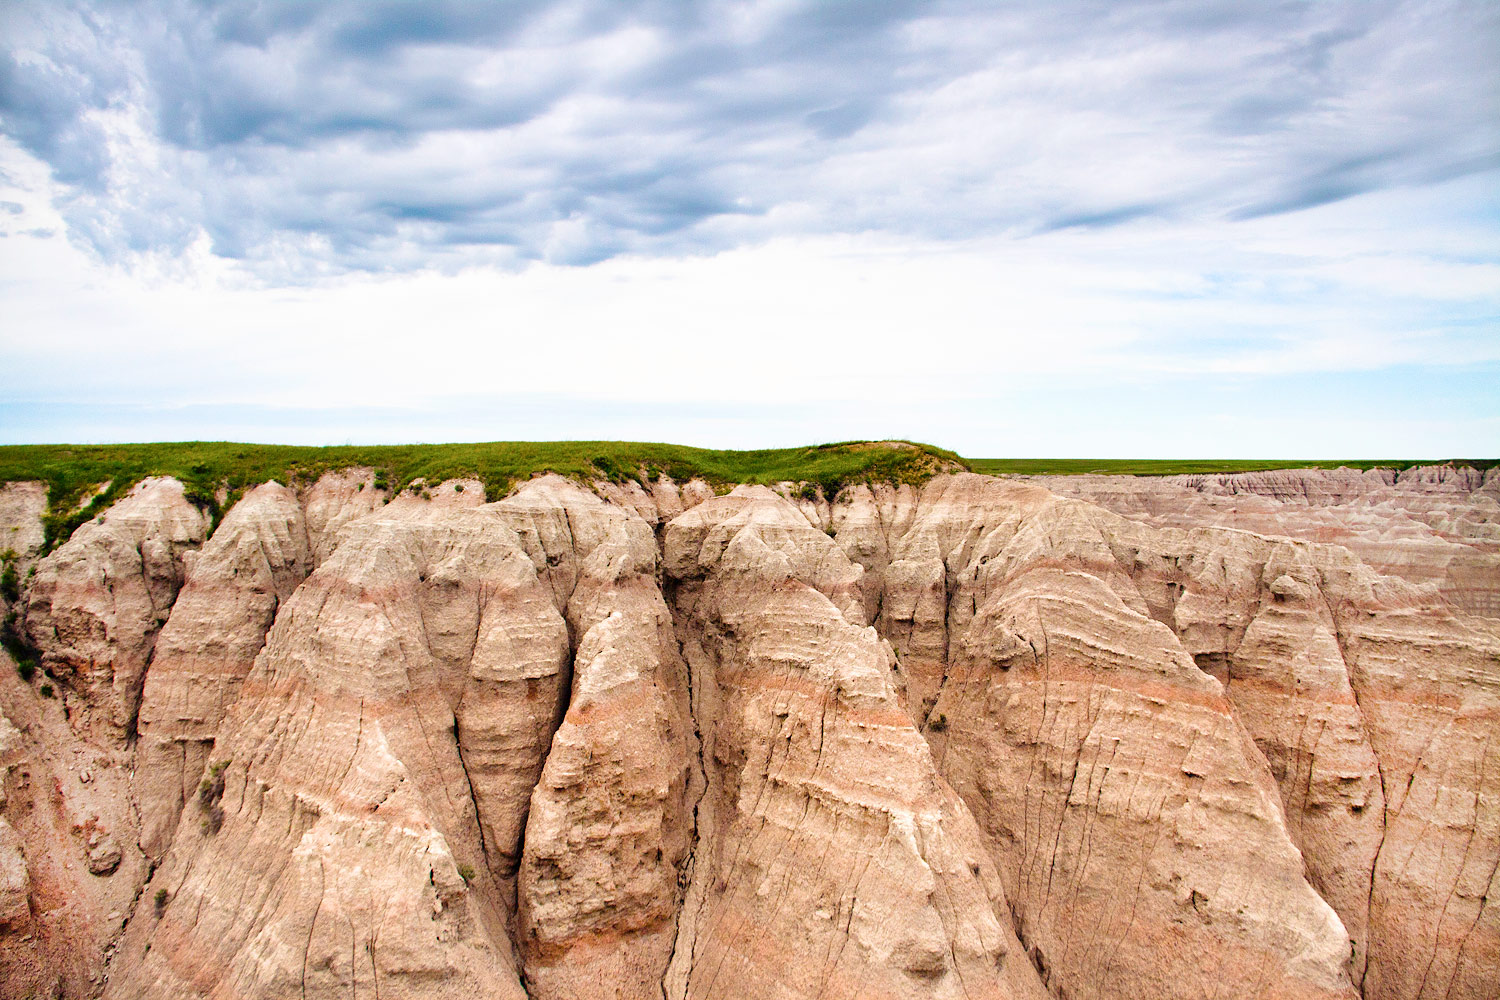 Badlands5-SpencerMickaPhotography.jpg